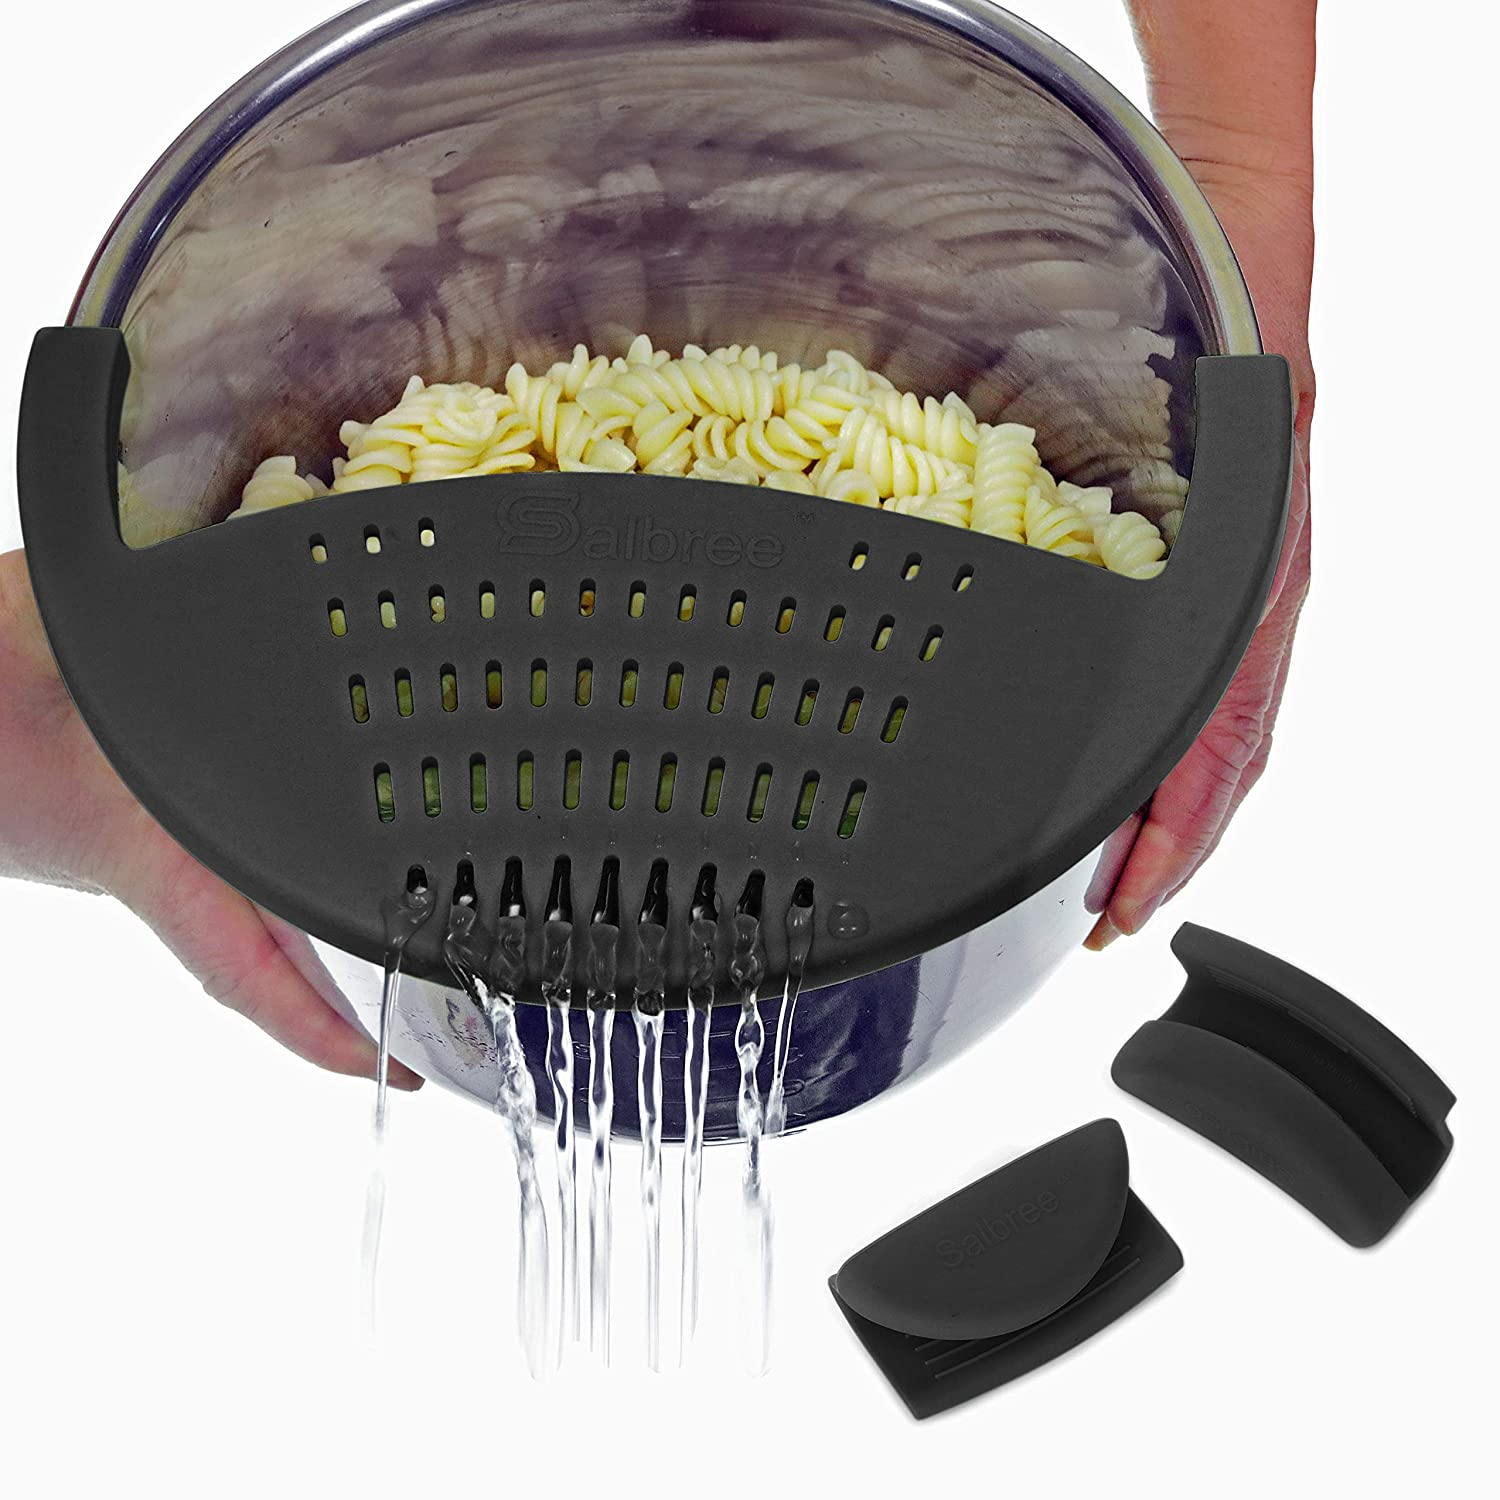 Salbree Silicone Snap Vegetable and Ground Beef Grease Strainer fits Instant Pot Accessories and Snaps to the 6 quart Instapot Pressure Cooker Inner Pan Small Mitts Set Included (6qt, black)